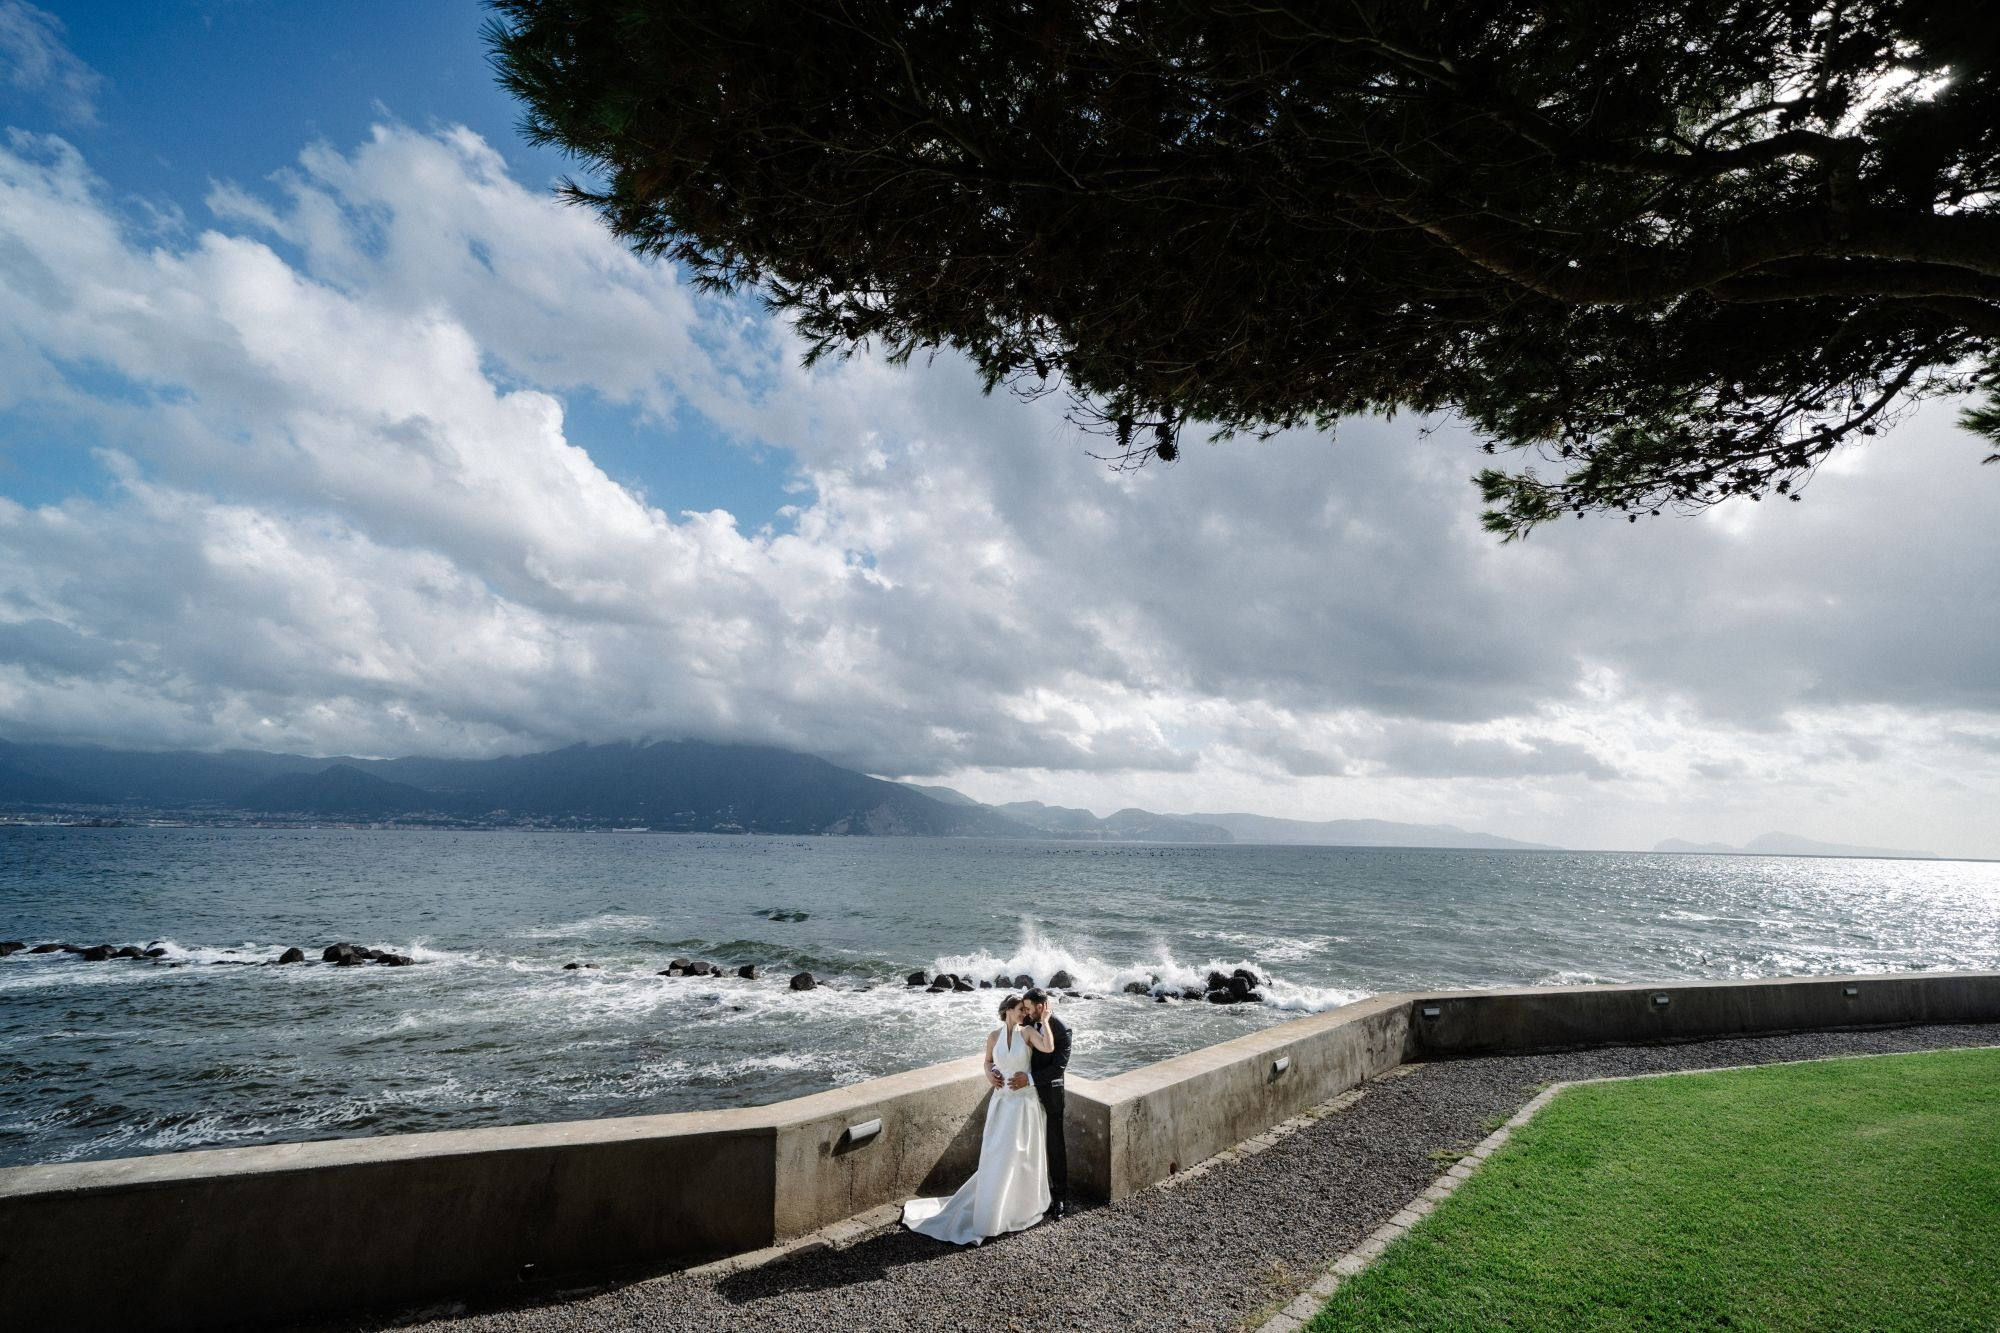 EXCLUSIVE WEDDING ON LAKE ORTE, ITALY